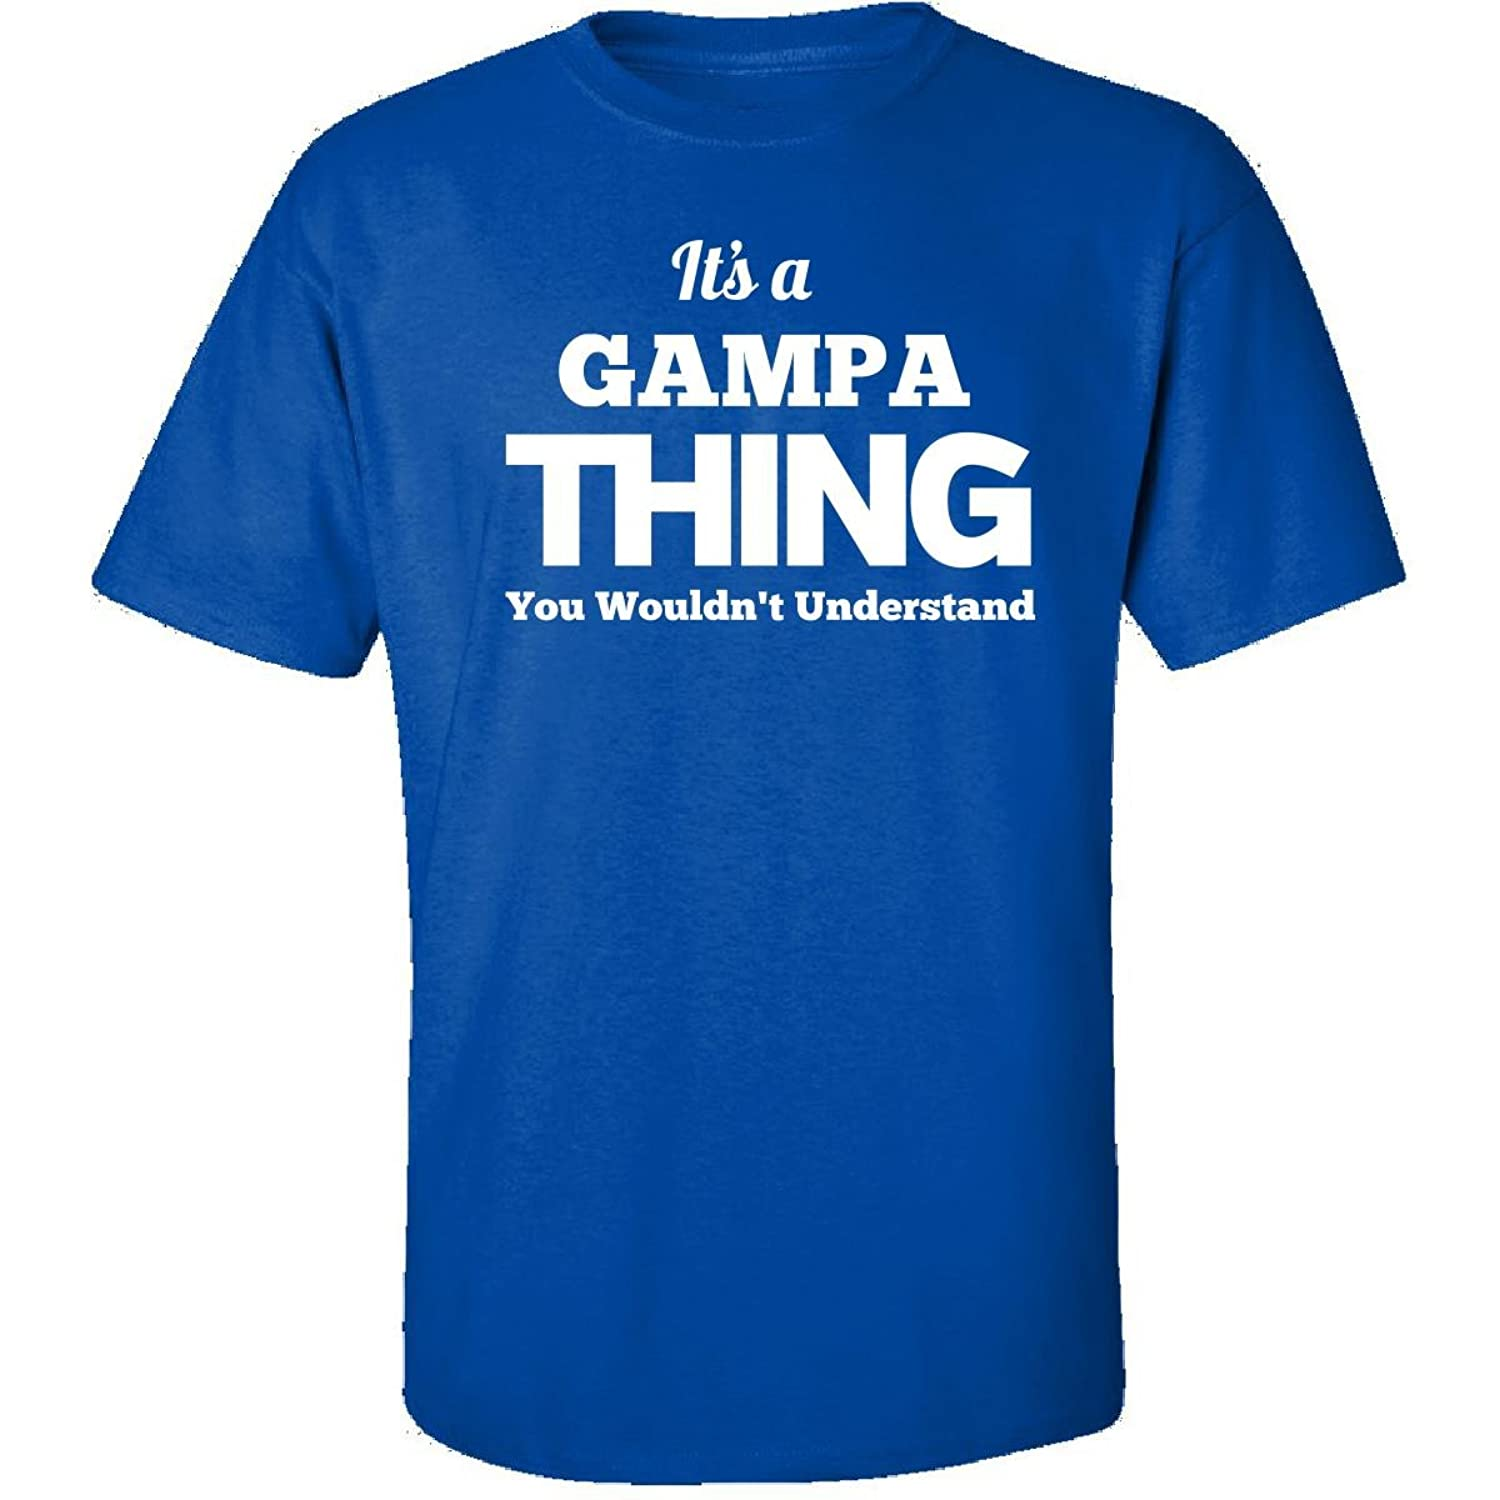 Its A Gampa Thing You Wouldnt Understand - Adult Shirt